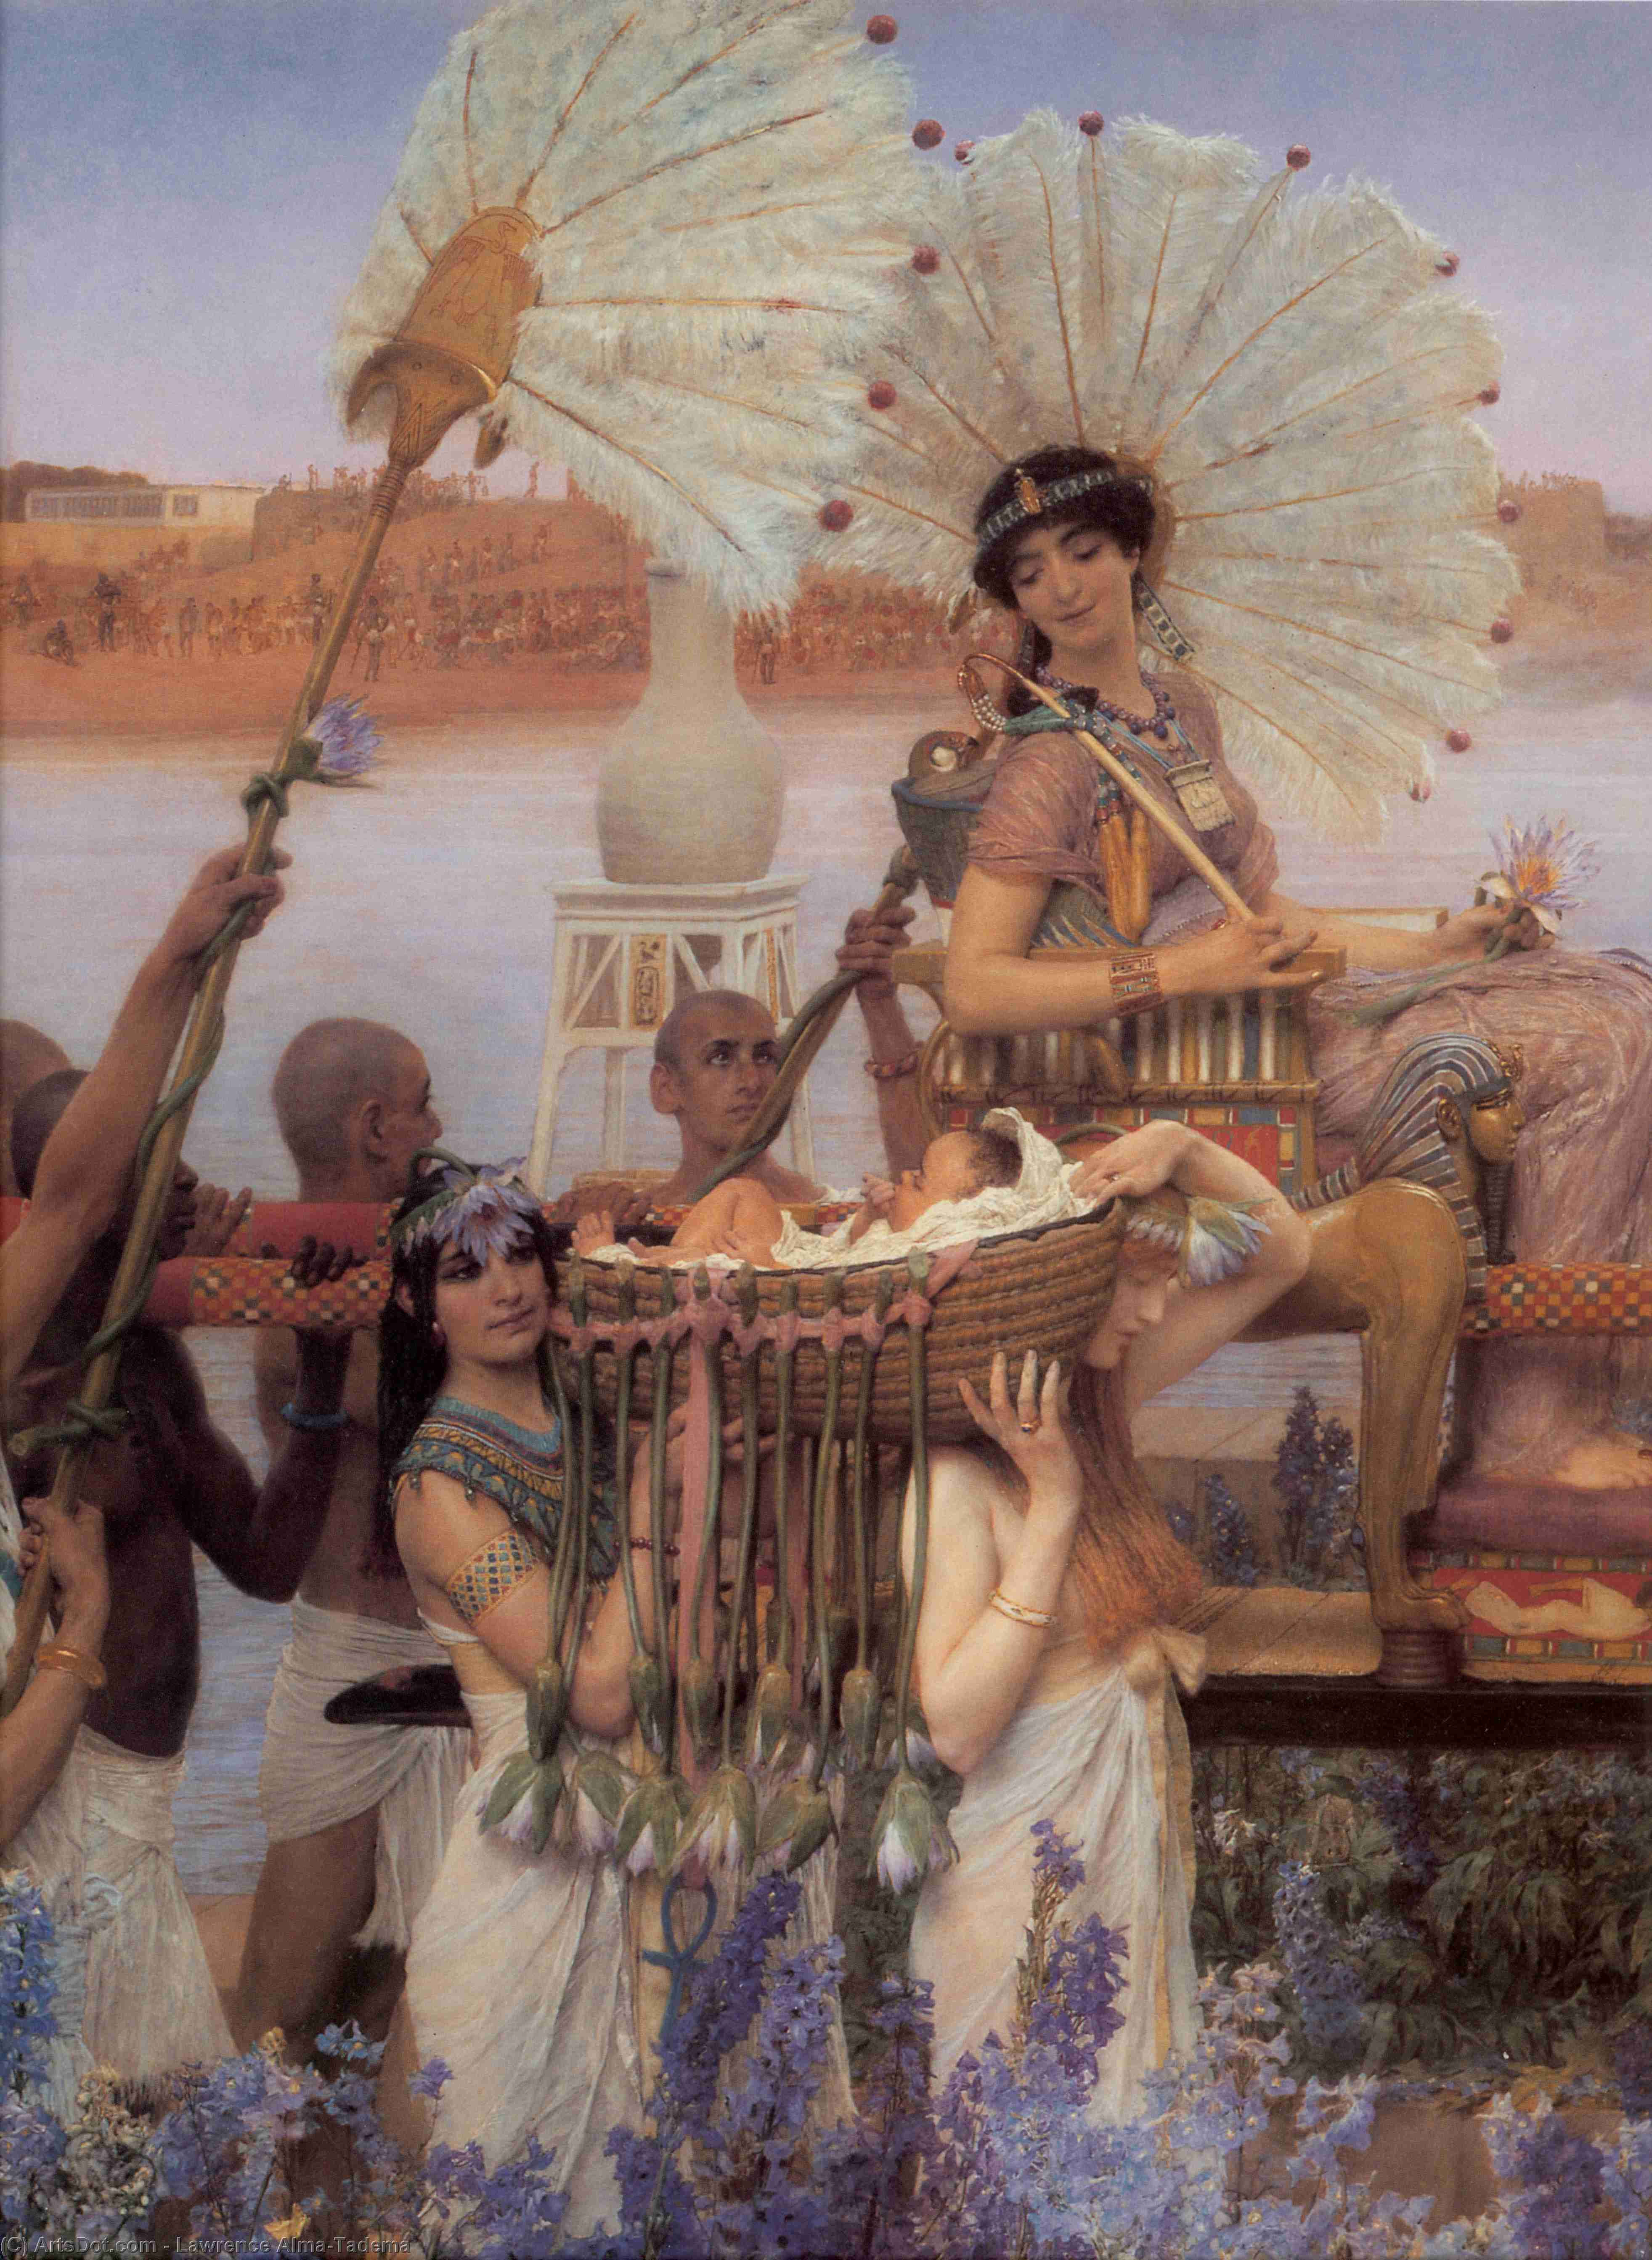 Wikioo.org - The Encyclopedia of Fine Arts - Painting, Artwork by Lawrence Alma-Tadema - The Finding of Moses detail